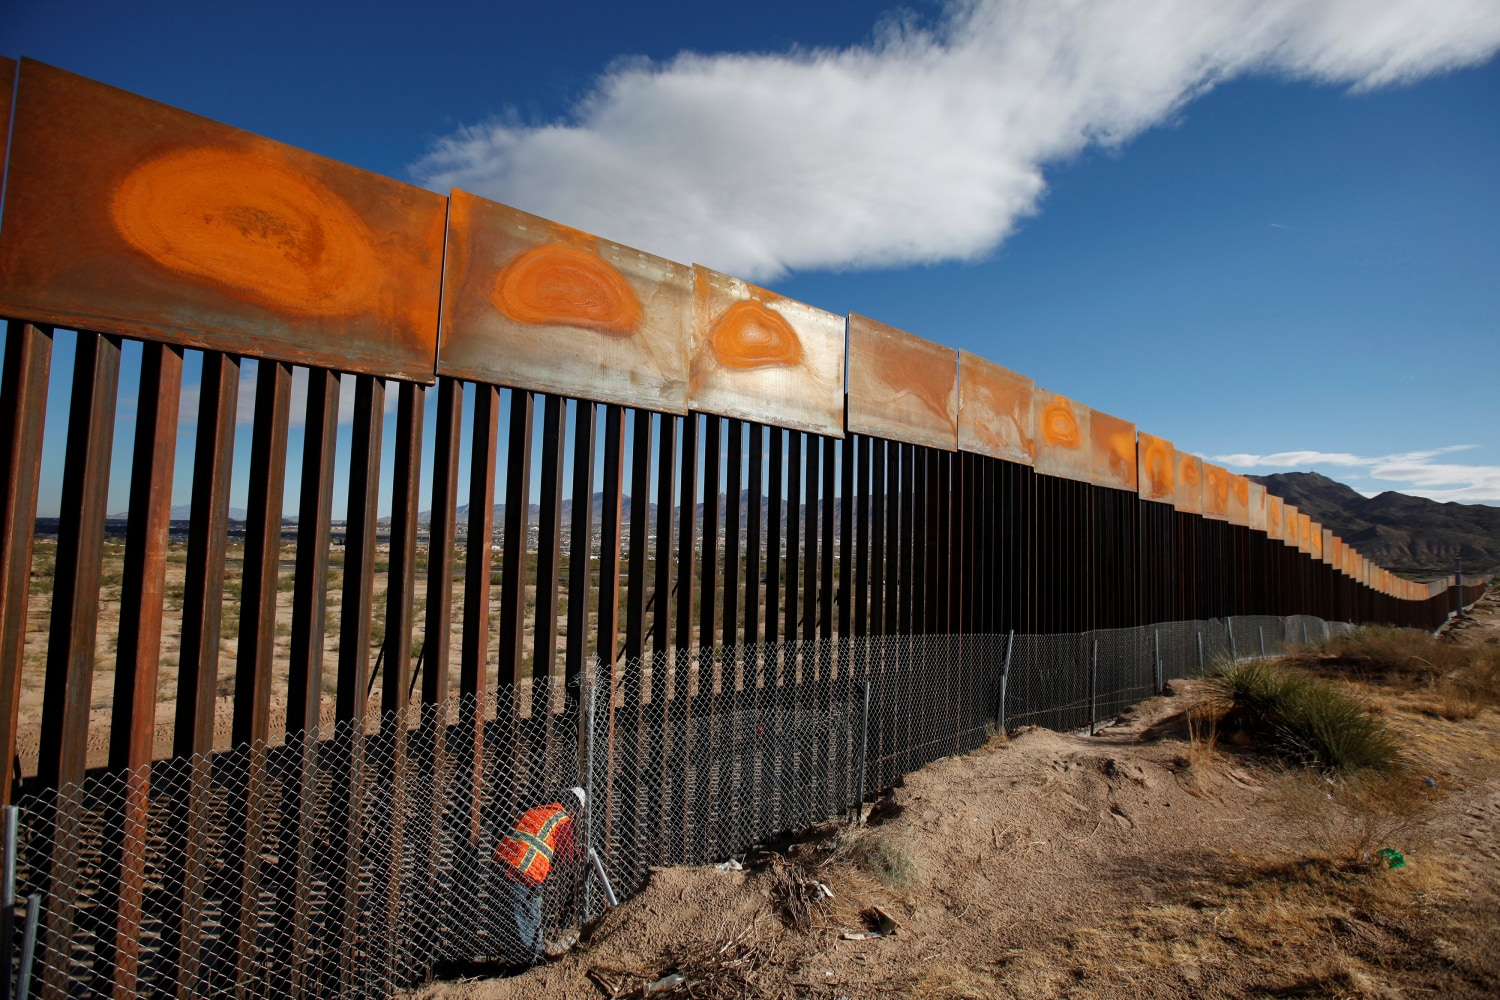 Prototypes for Construction of Trump's Border Wall to Completed by September